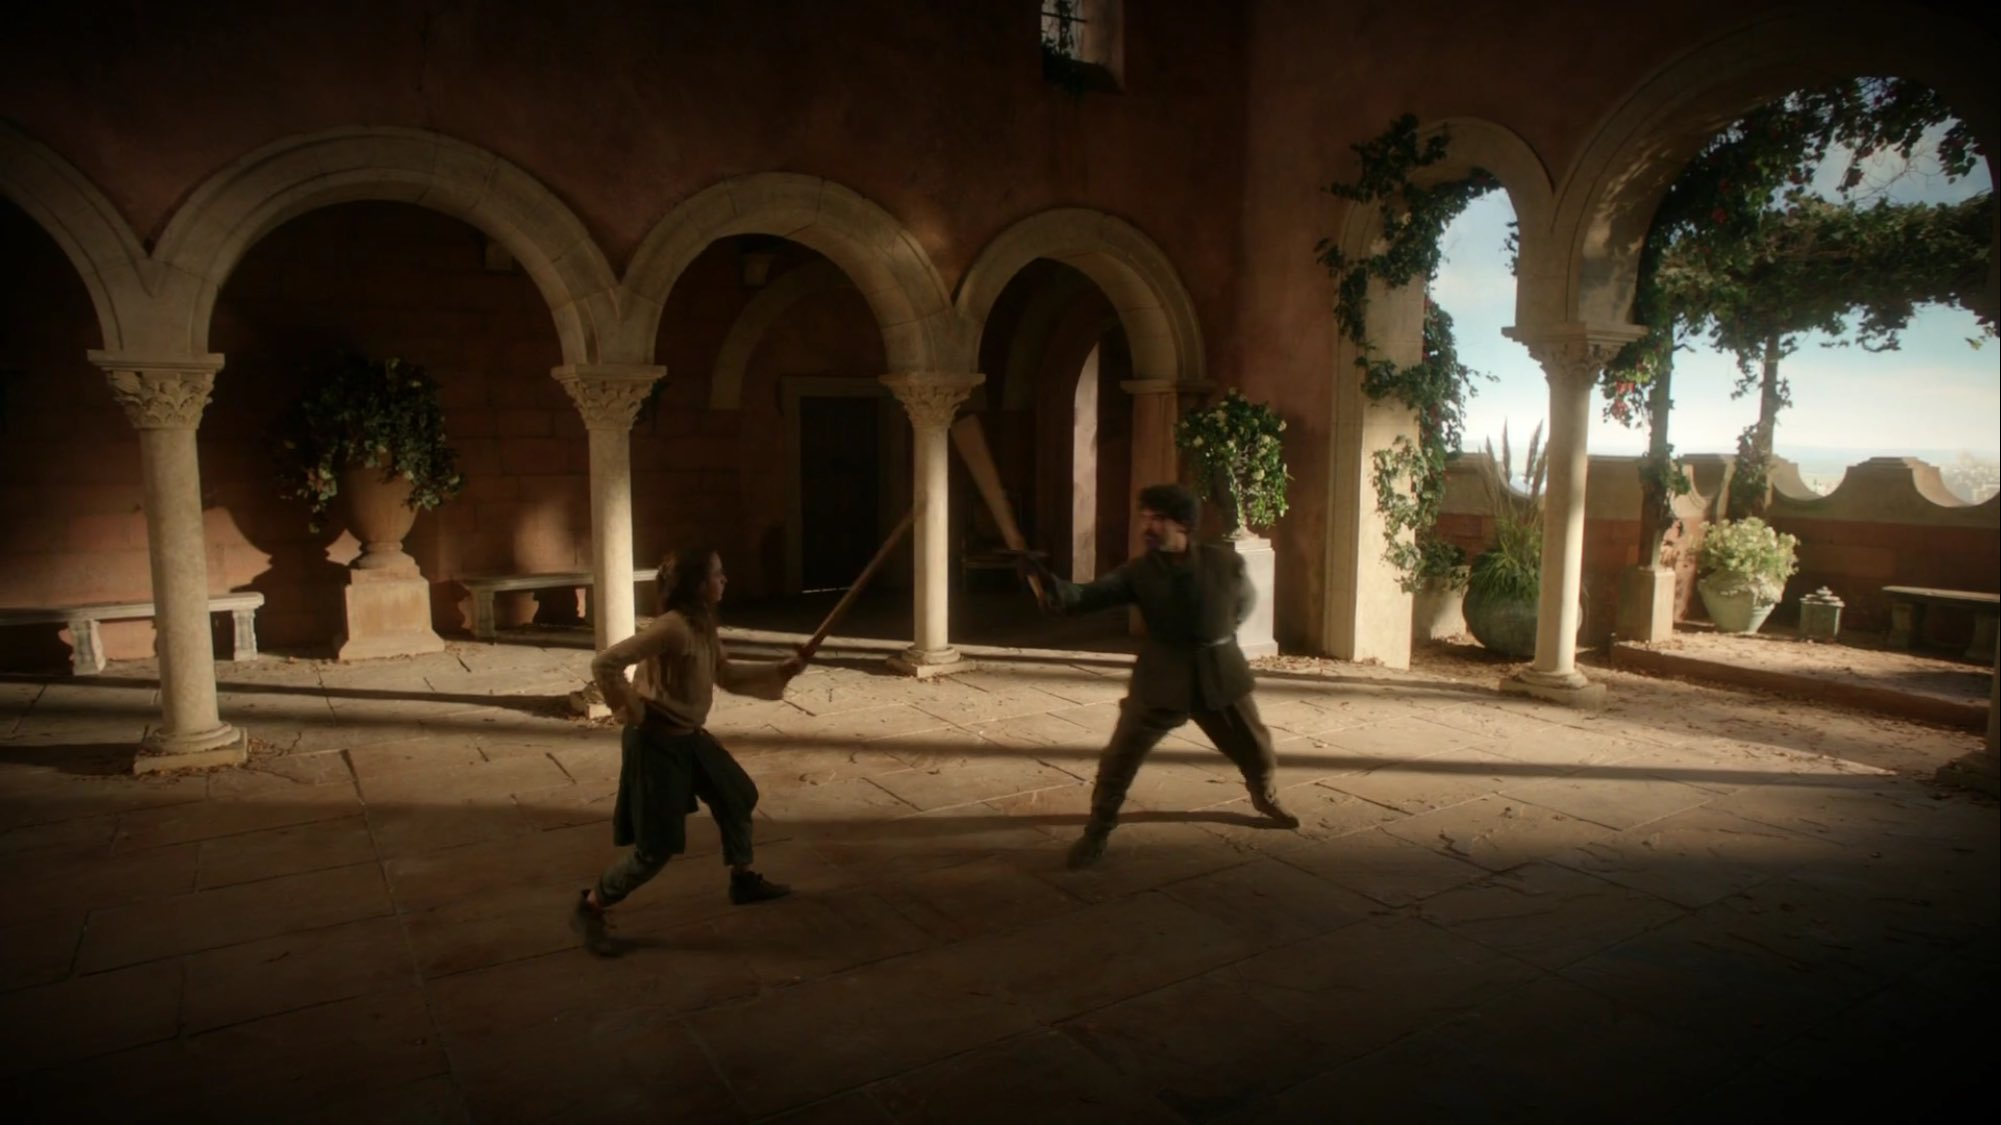 Kingslanding, Arya is in the middle of her water dancing lesson with Syrio. Things seem light and fun... https://t.co/mBgsLTNAPc